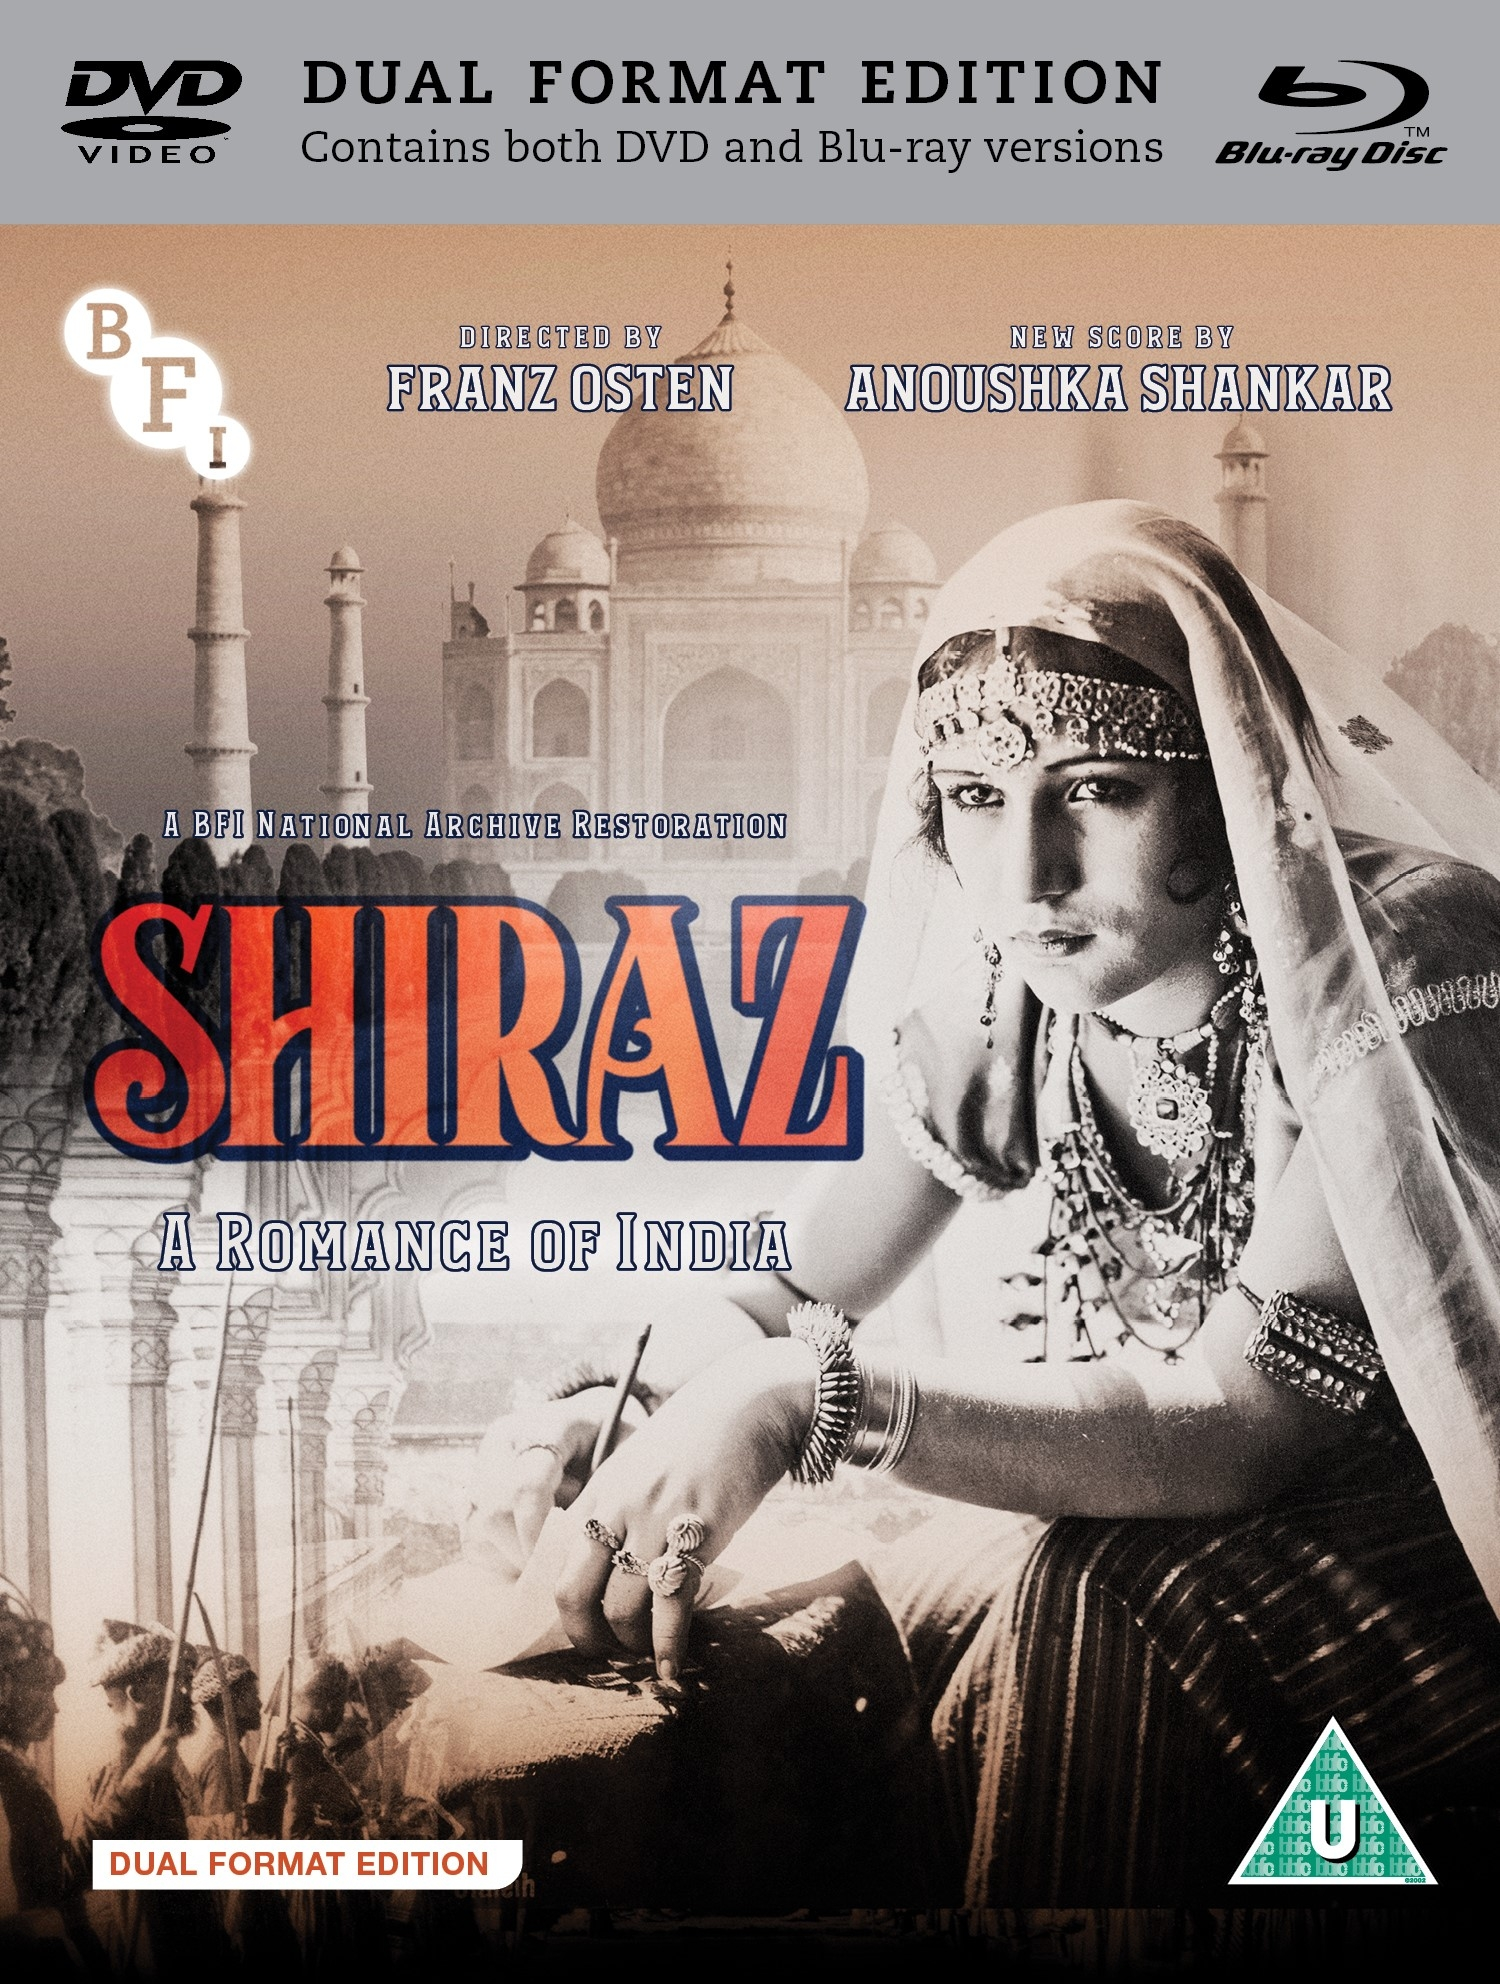 Buy PRE-ORDER Shiraz: A Romance of India (Dual Format Edition)